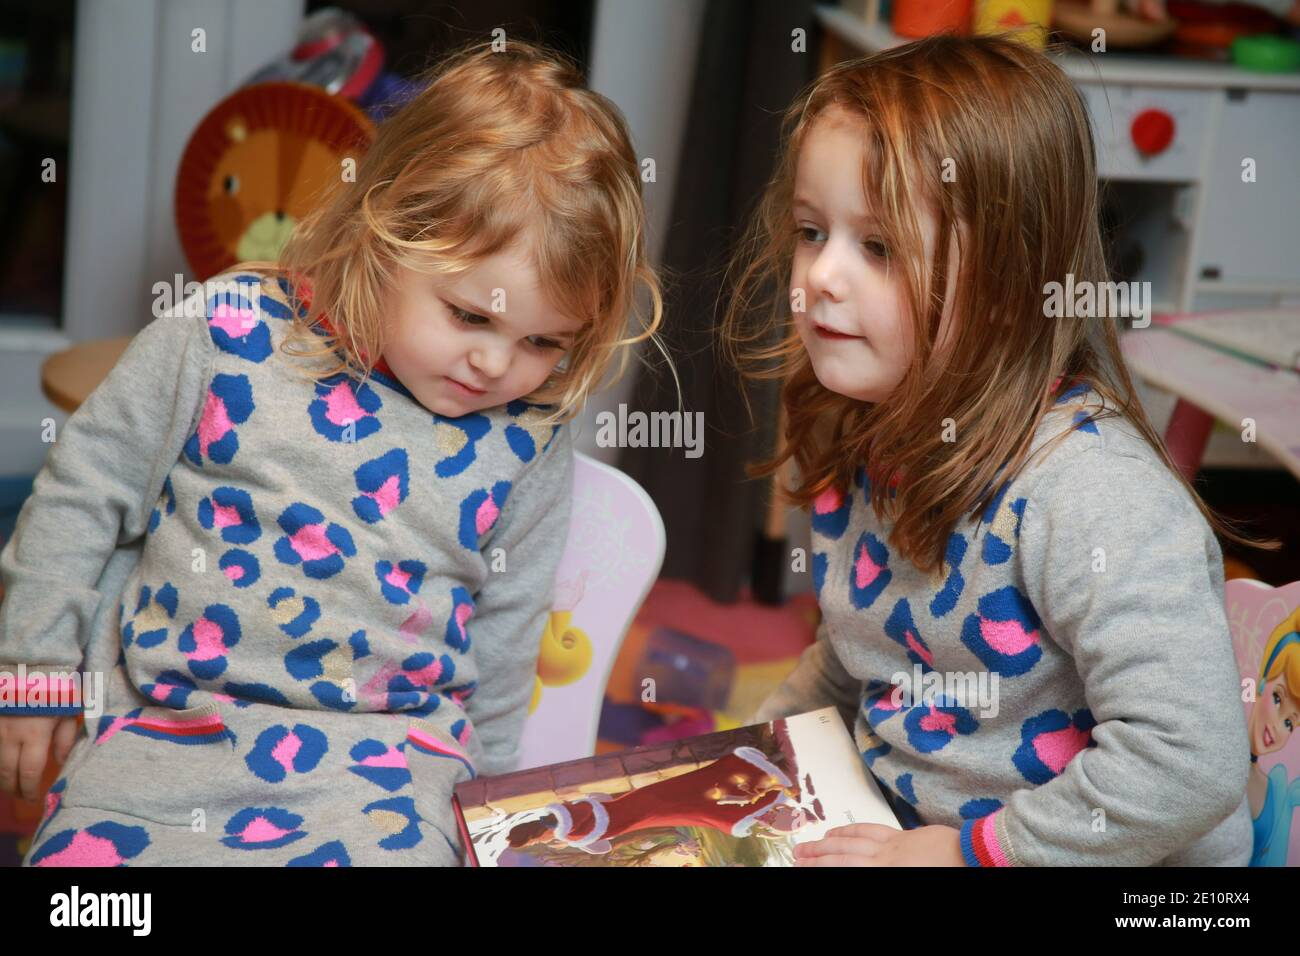 A 4 year old girl reading a book to her little sister. Stock Photo